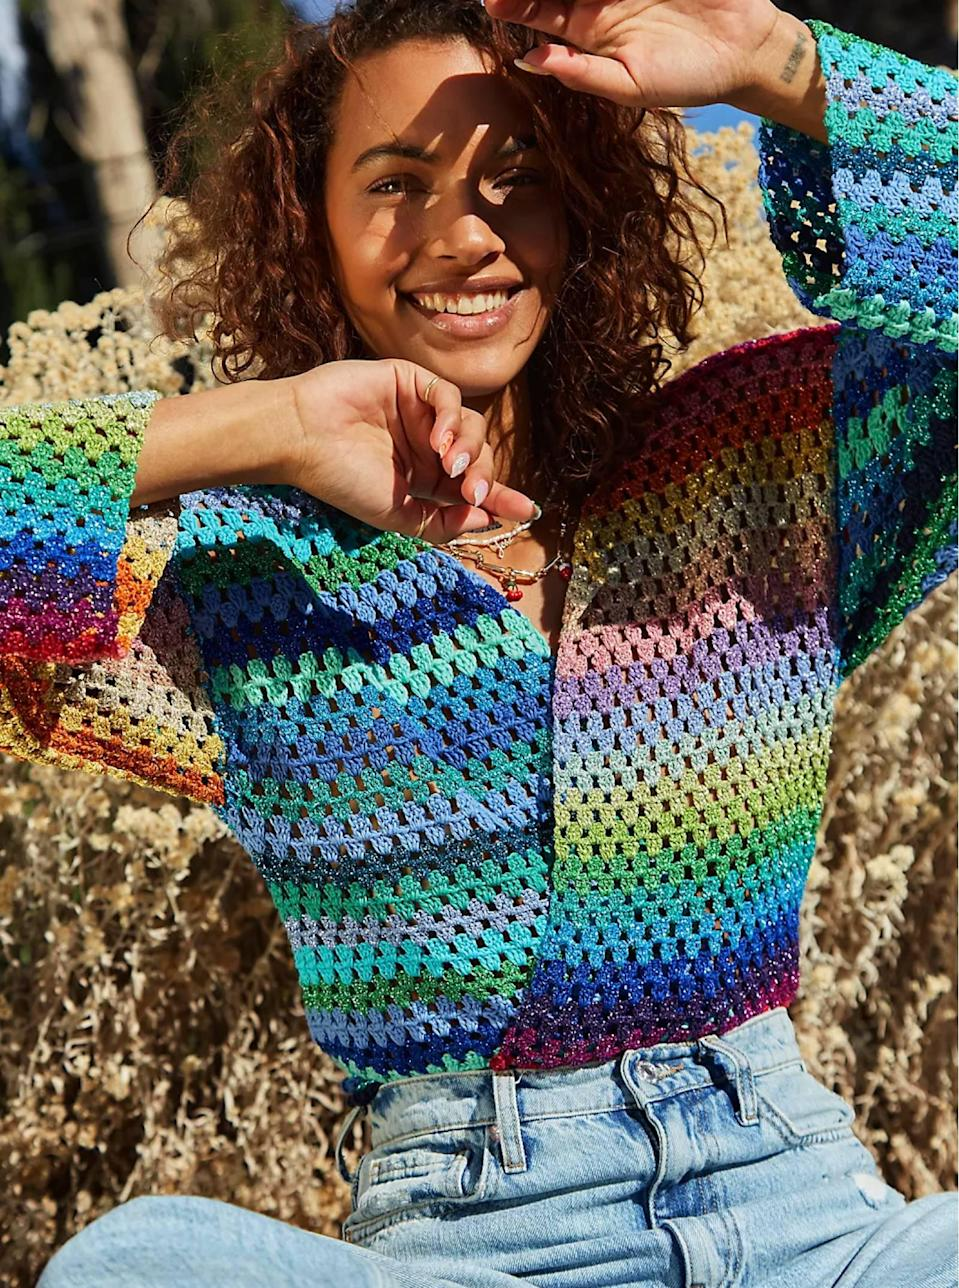 """Lastly, a shimmery rainbow number that will make your daily vintage denim anything but boring. $750, Free People. <a href=""""https://www.freepeople.com/shop/rose-carmine-crochet-cardigan/?"""" rel=""""nofollow noopener"""" target=""""_blank"""" data-ylk=""""slk:Get it now!"""" class=""""link rapid-noclick-resp"""">Get it now!</a>"""